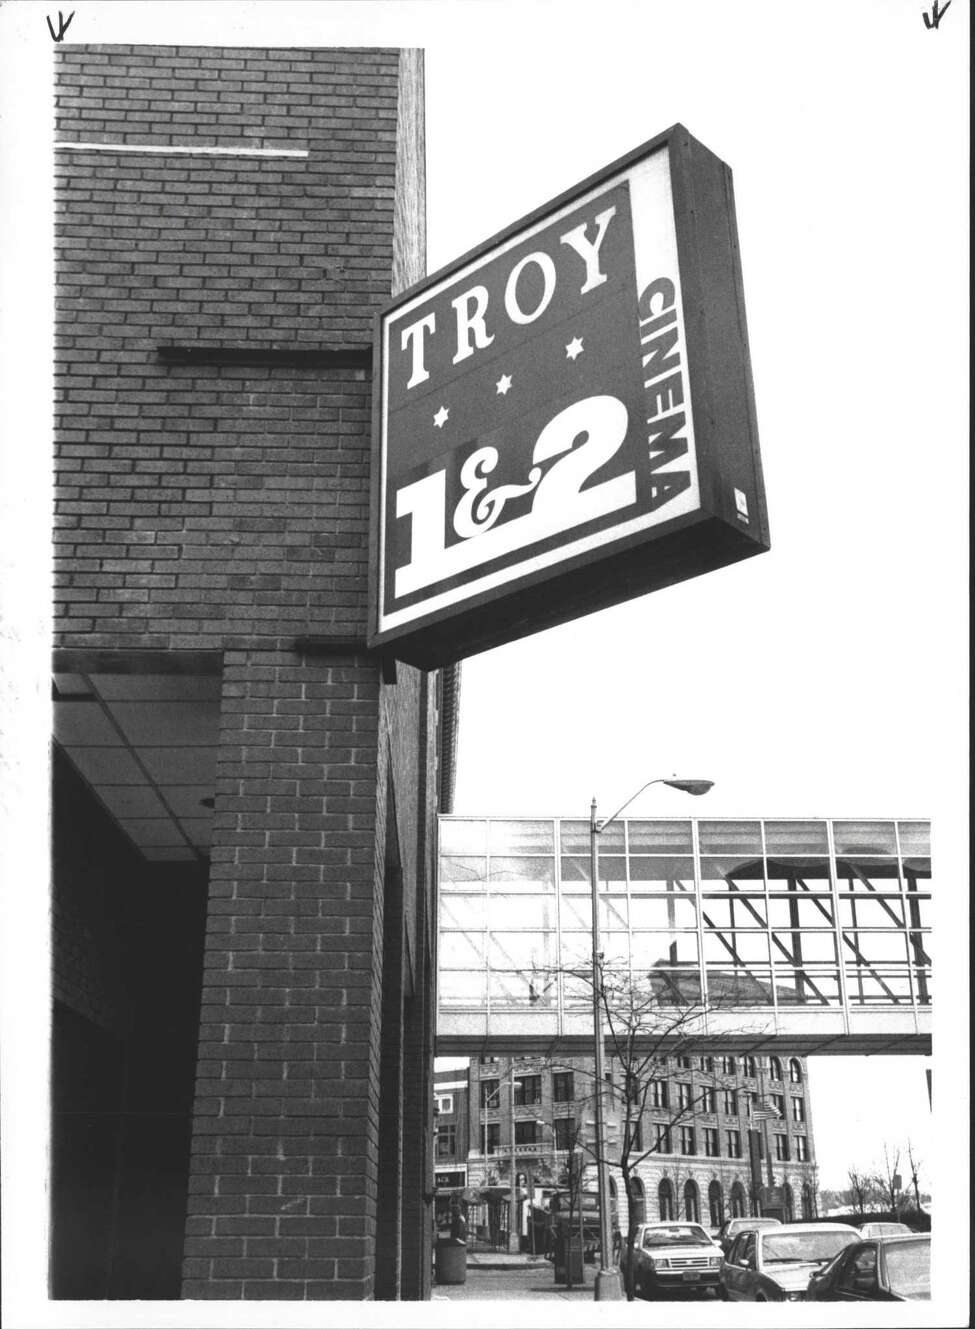 Troy Cinema, Troy Theaters, New York. Sign on Atrium Building. April 10, 1986 (Roberta Smith/Times Union Archive)